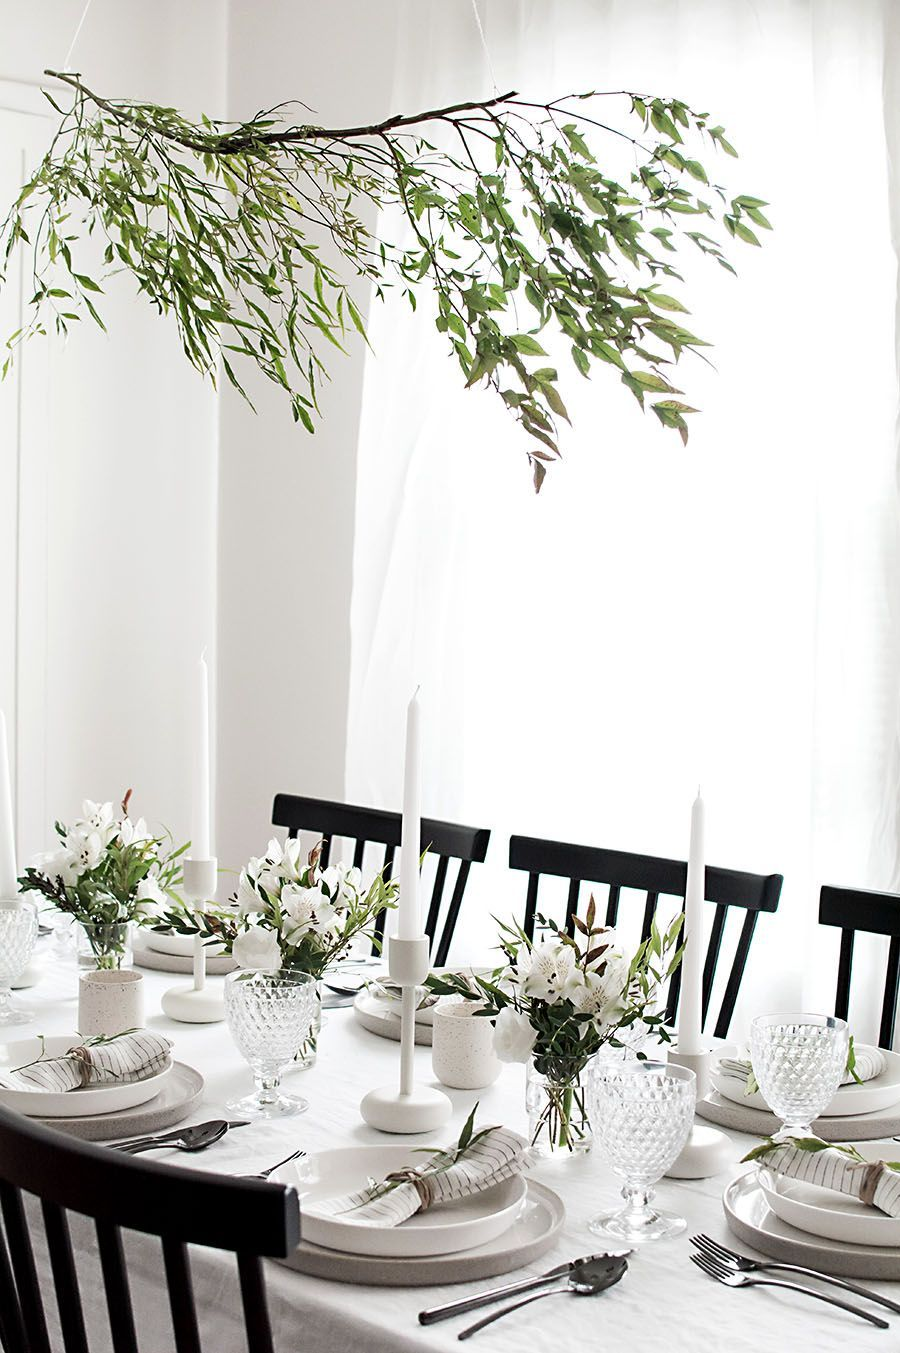 8 Ways To Stylishly Decorate Your Thanksgiving Table (The Edit ...